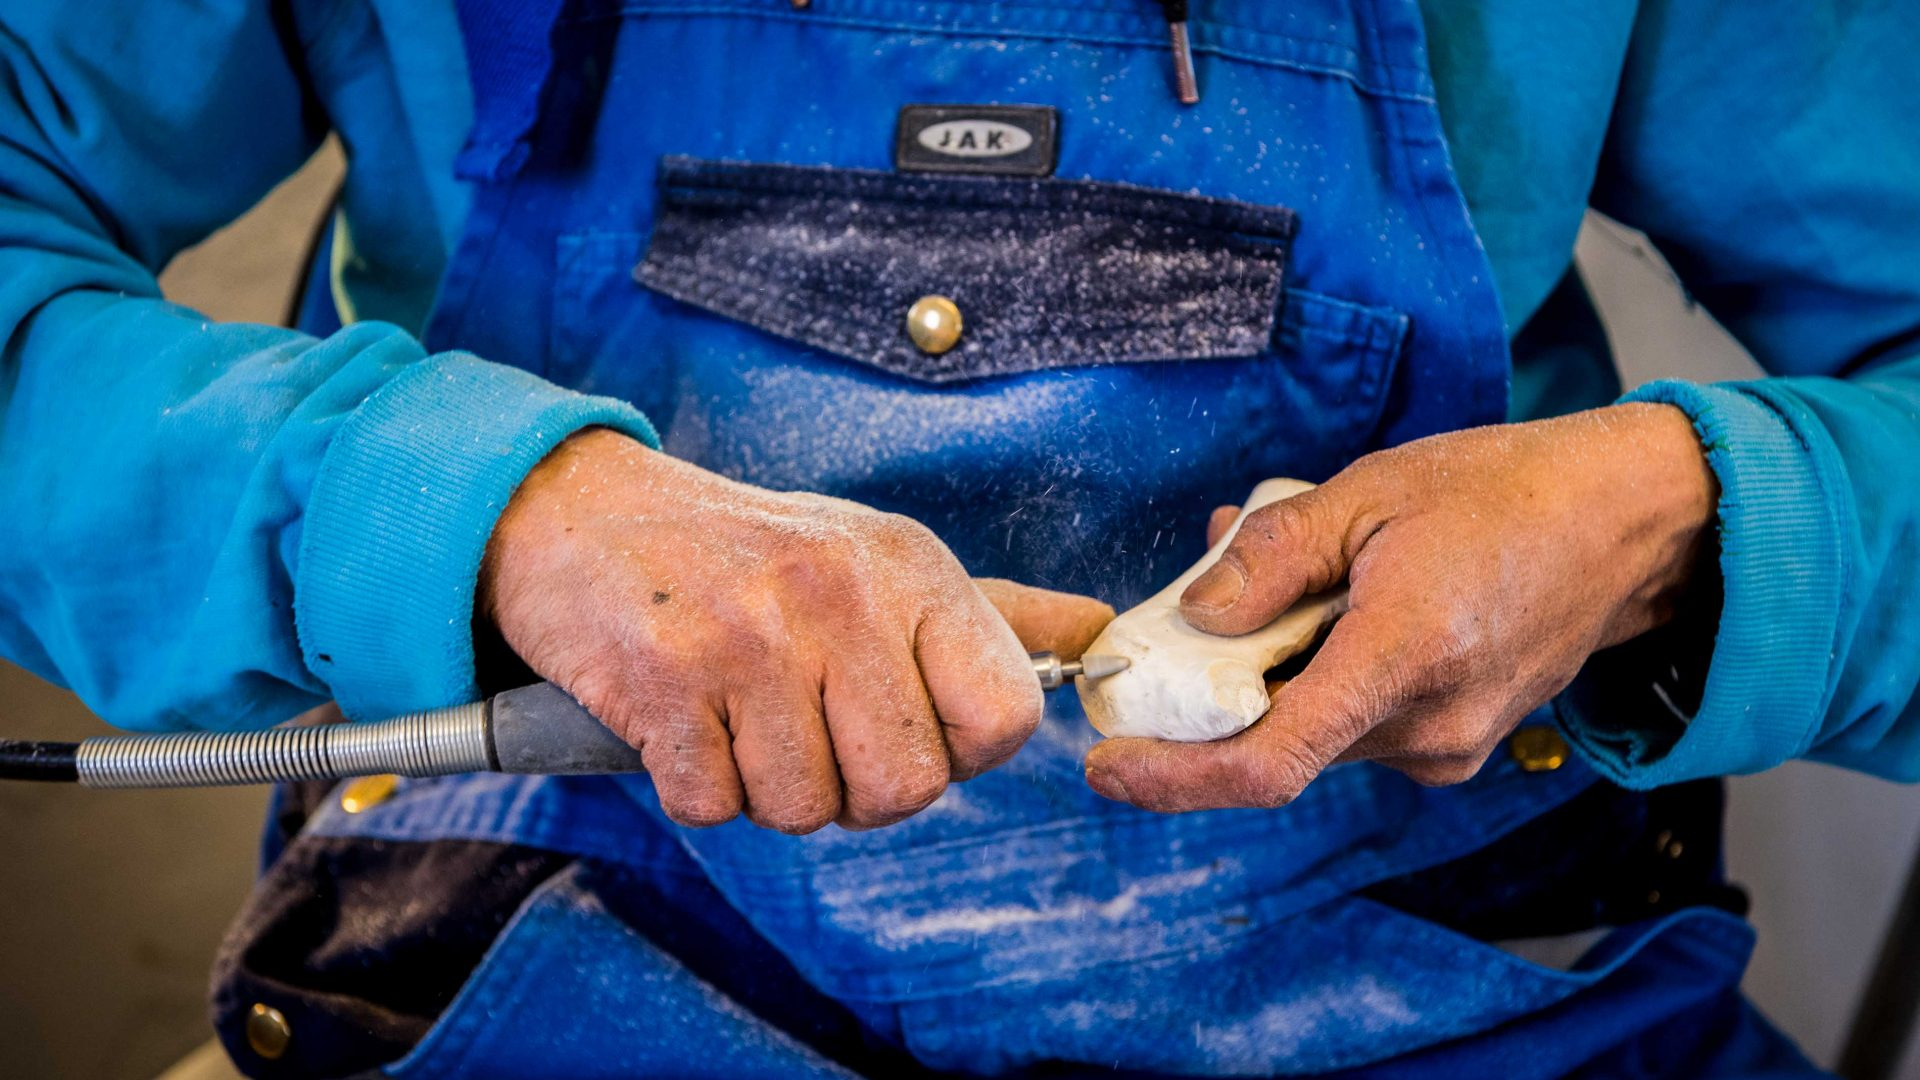 A local artisan carves a small keepsake sculpture out of whale bone in Ilulissat, Greenland.